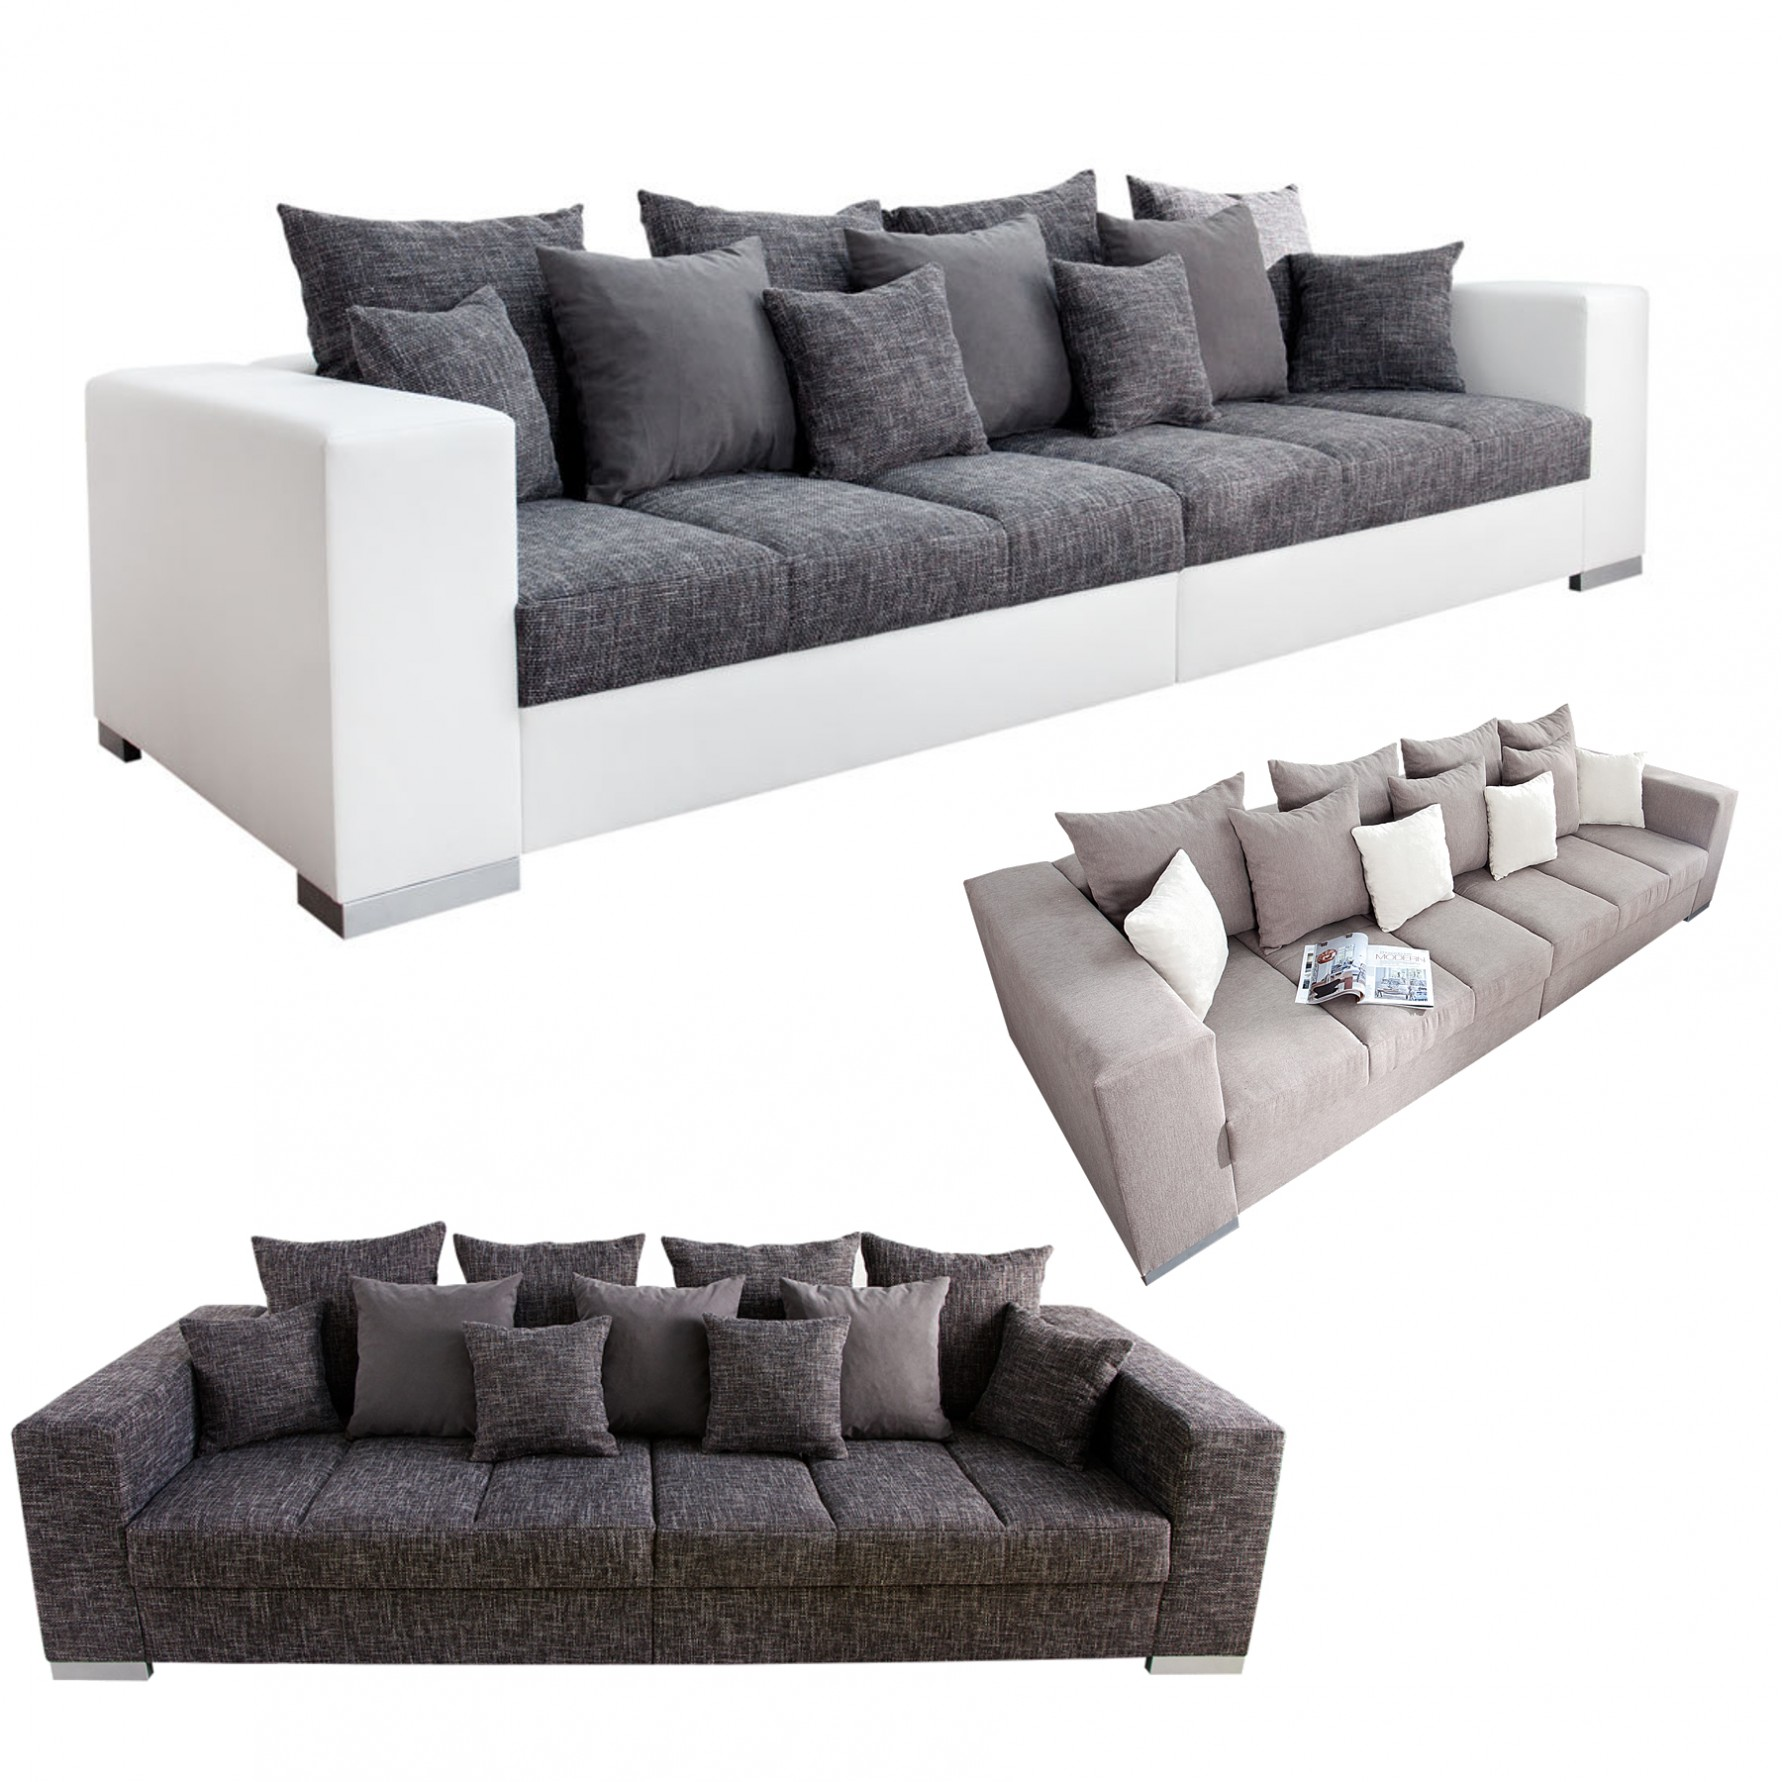 Big Sofa Xxl Big Sofa L Form Awesome Sofa L Form Braun Frisch Sofa Leder Great